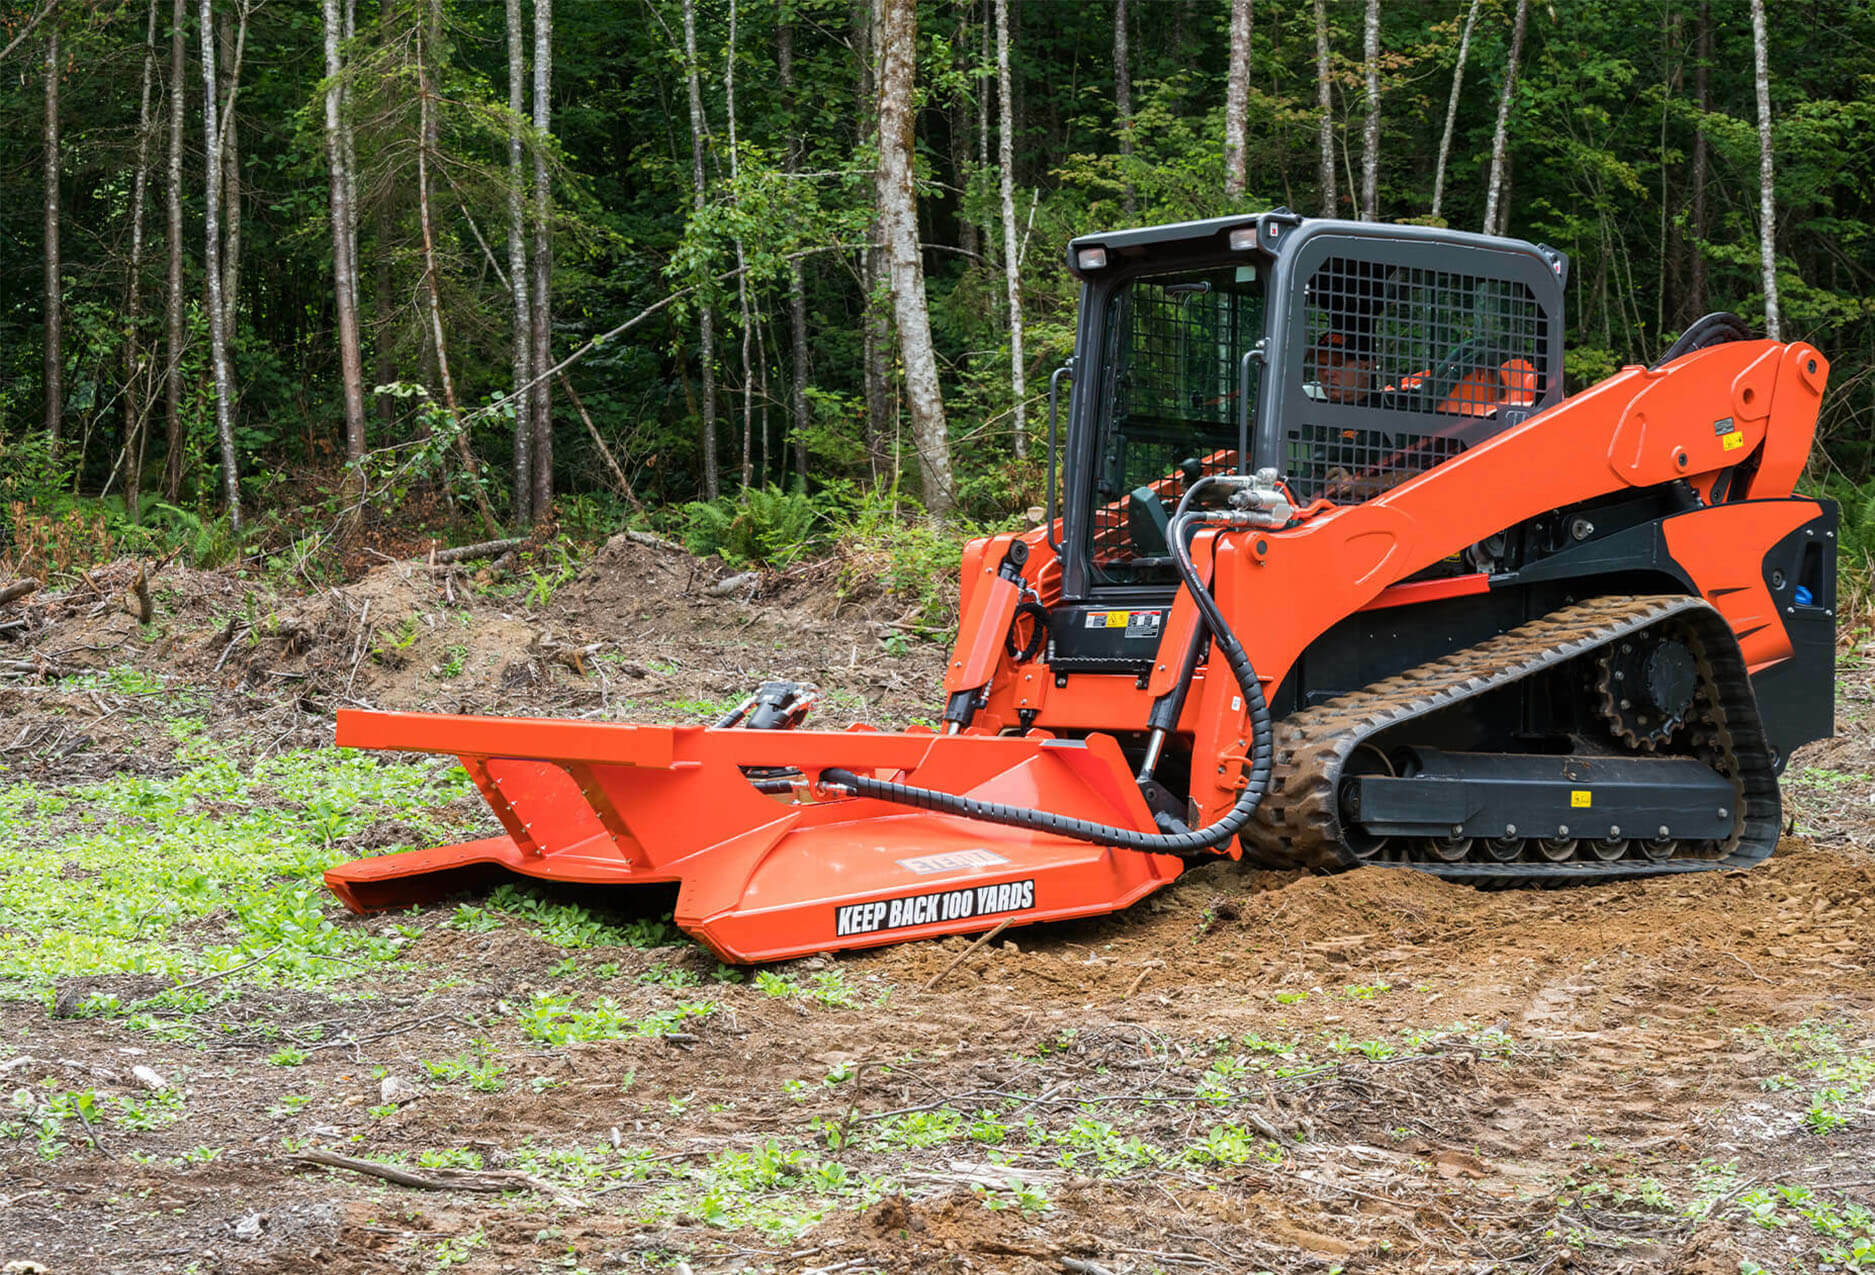 """Eterra Typhoon 74"""" clearing Mower Skid Steer Attachment Side Action"""